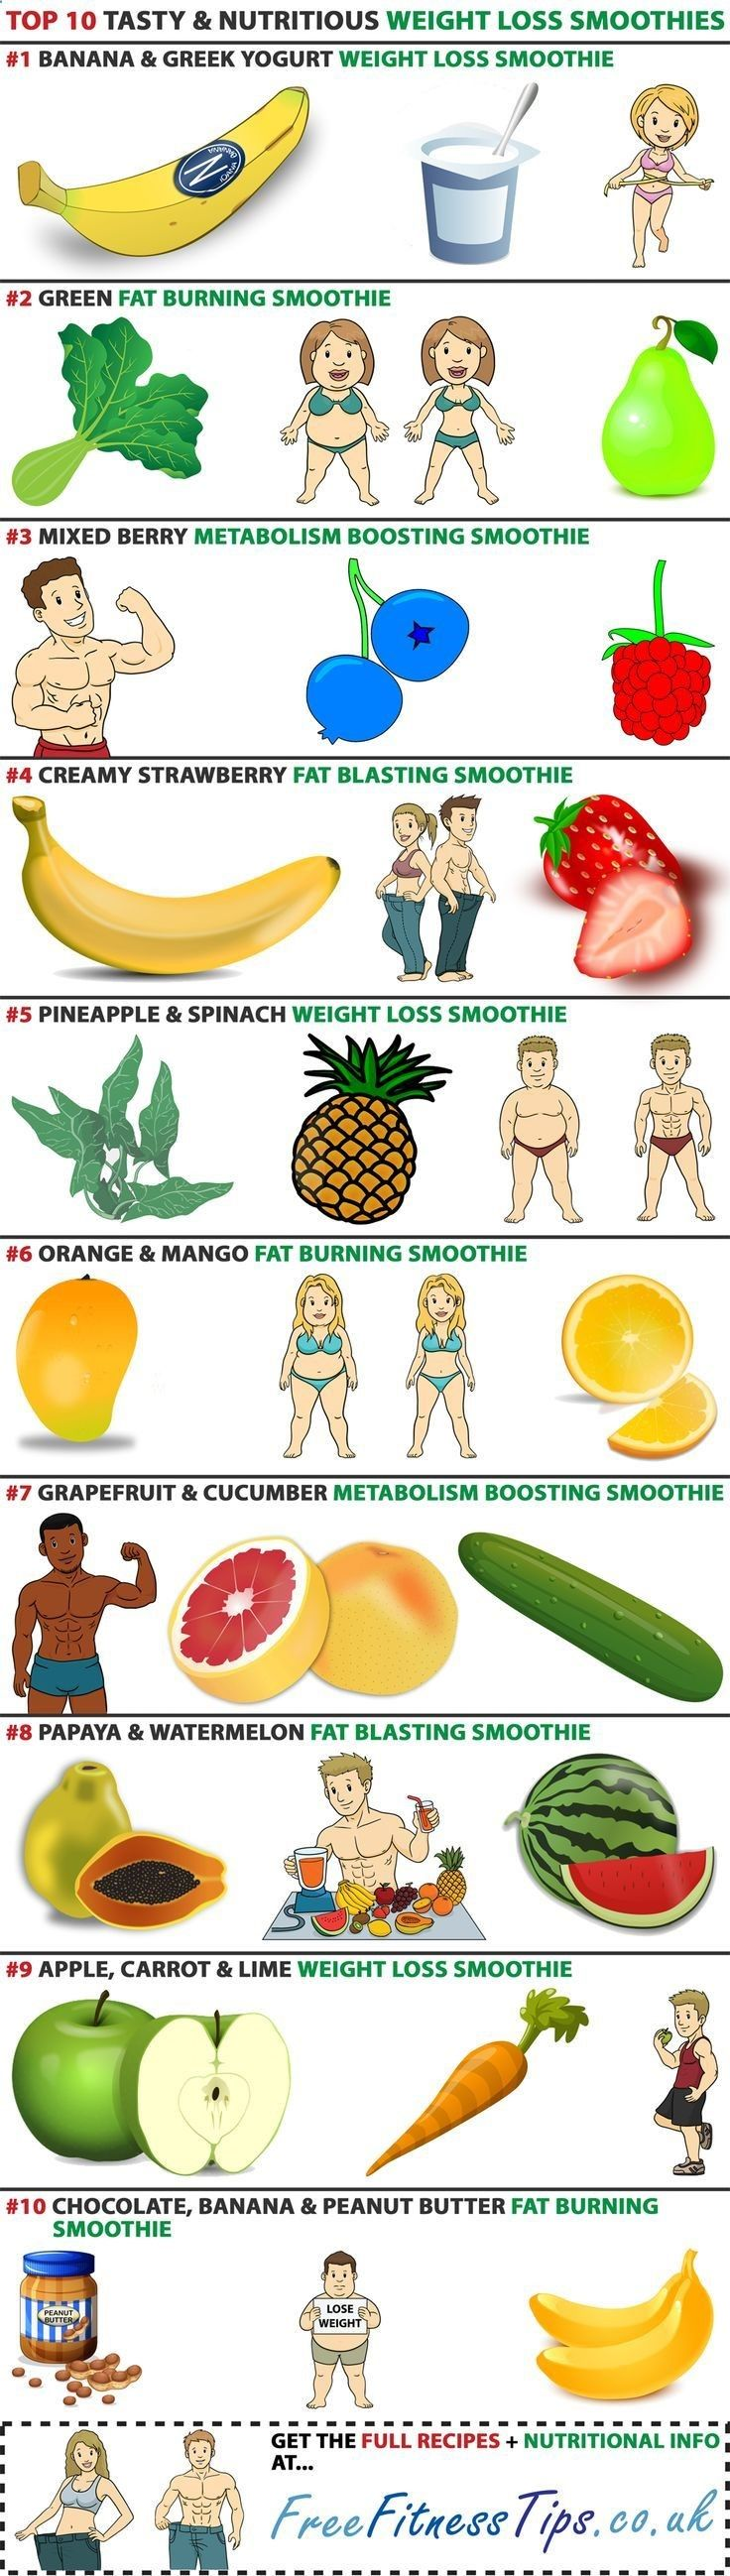 How to reduce fat from thighs fast image 4